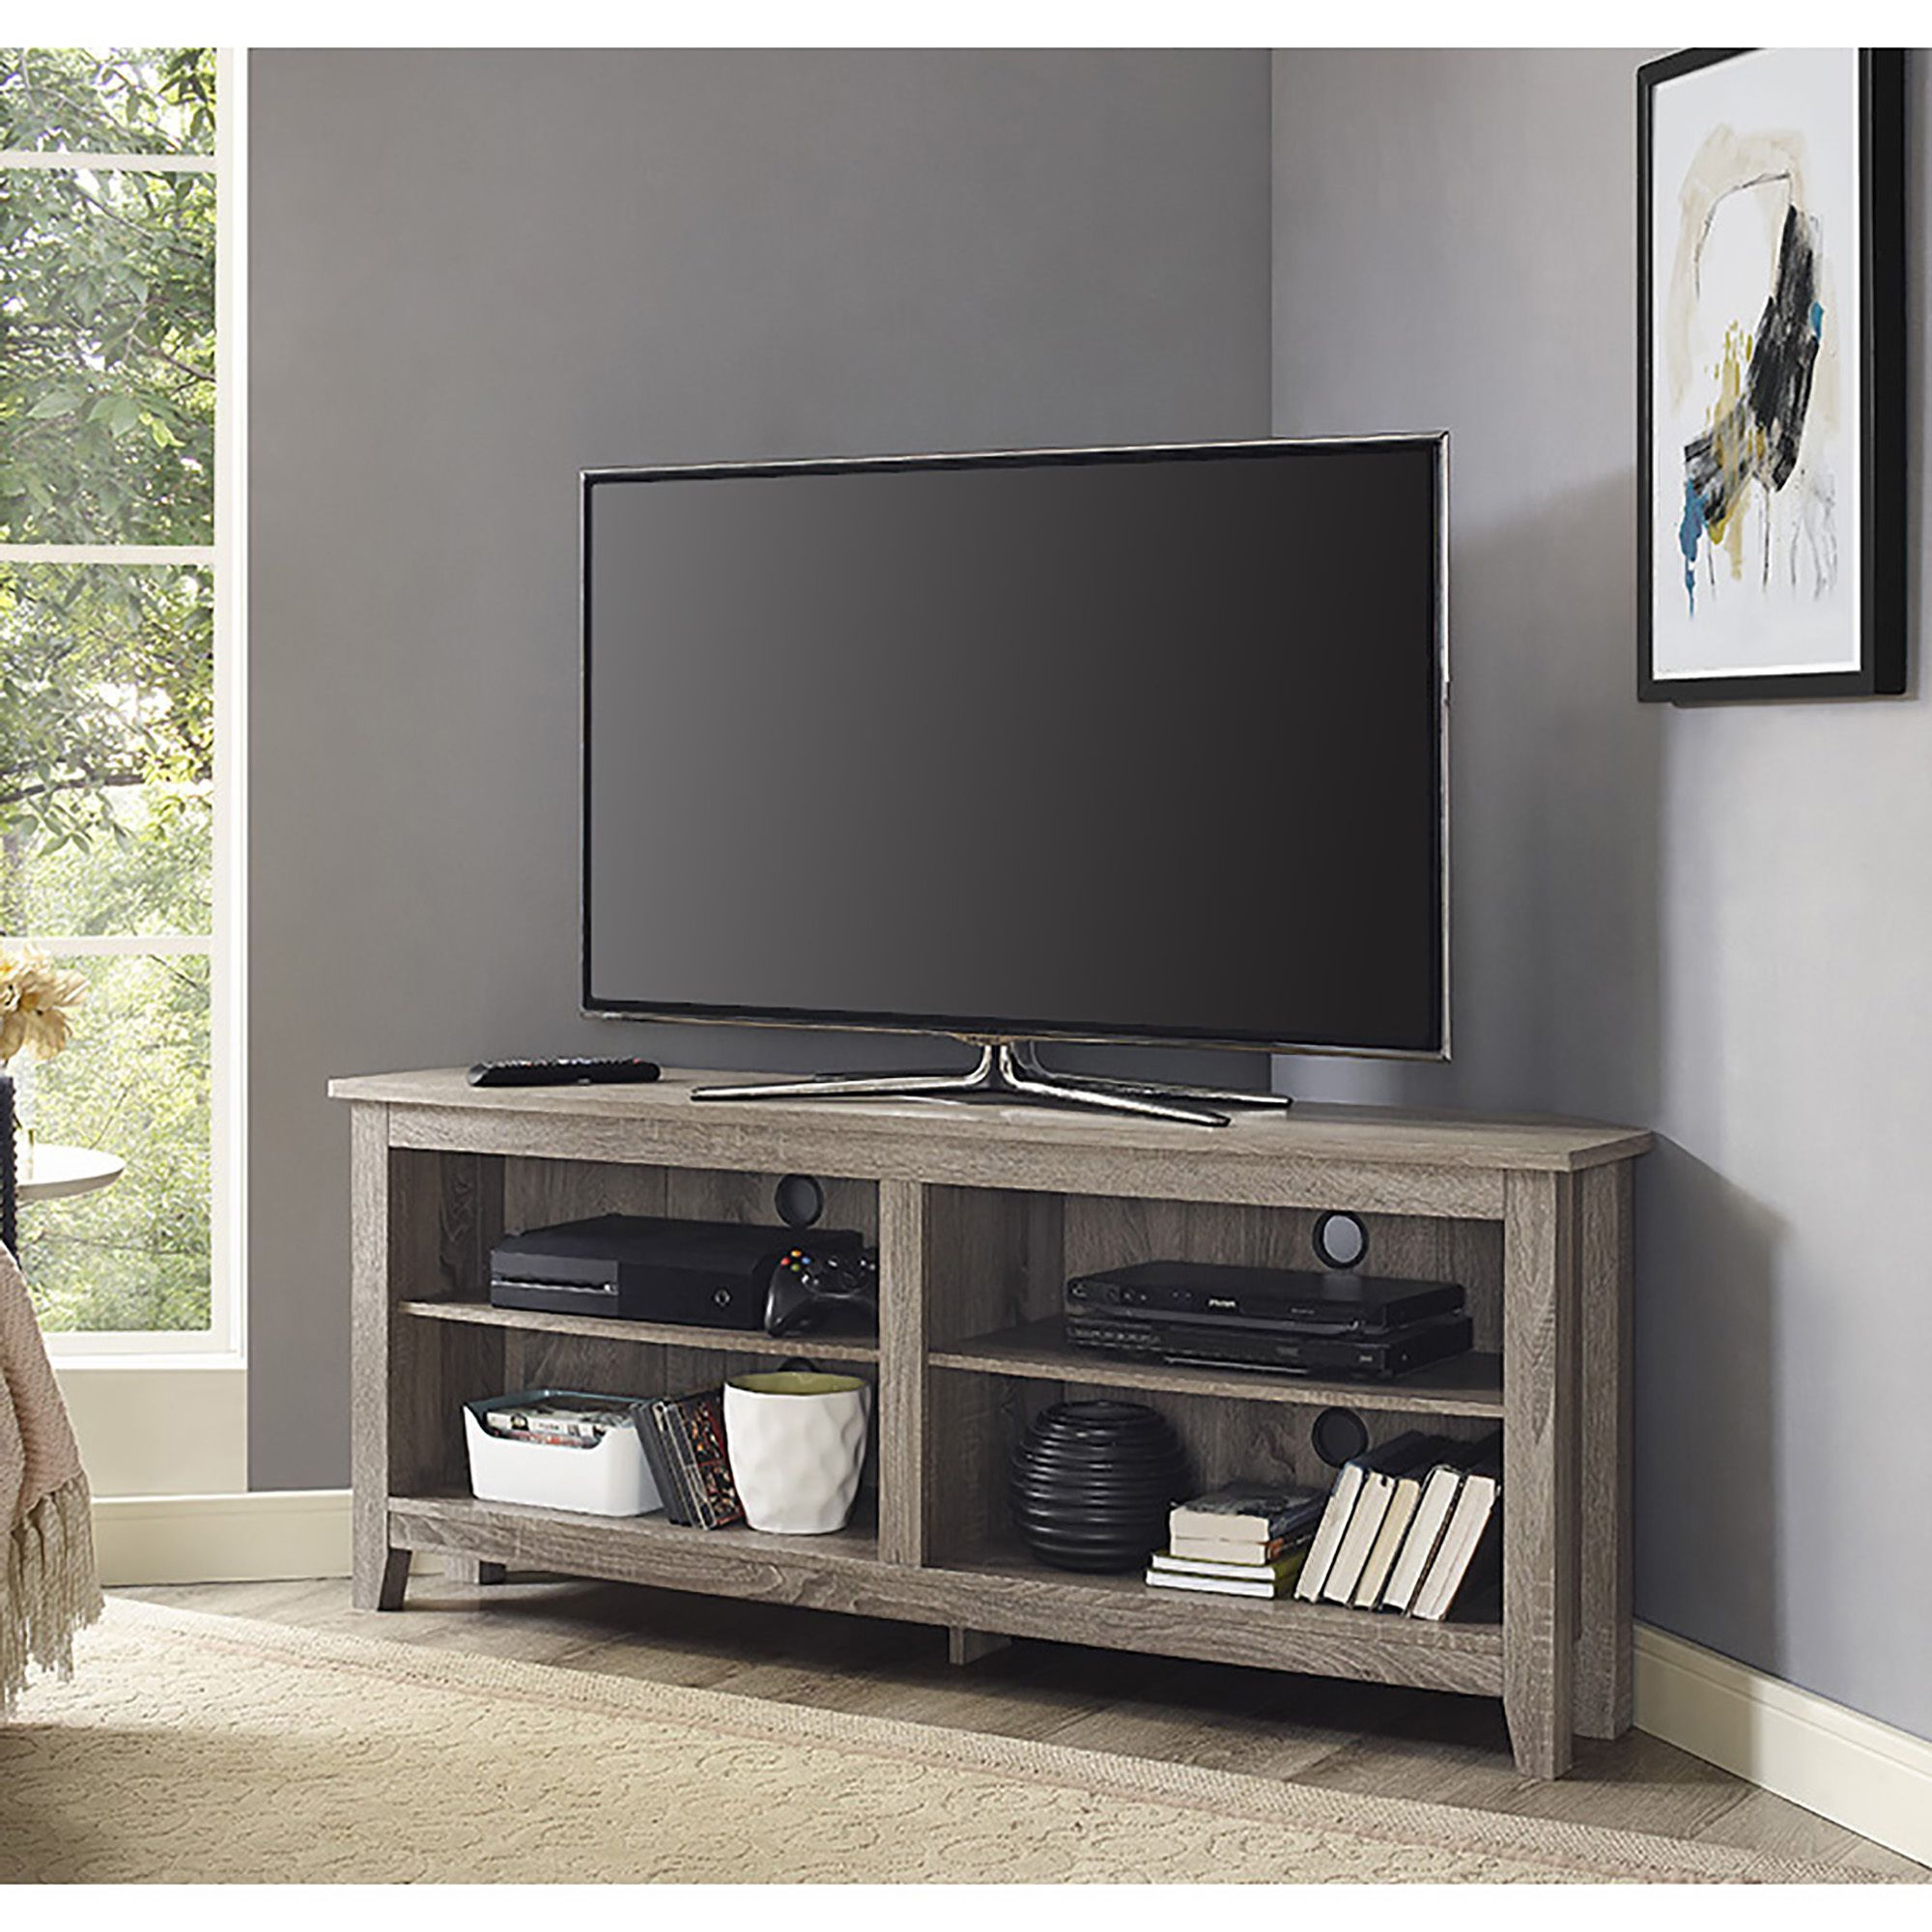 Compact Corner Tv Stands In Famous Display Your Tv In Style With This Corner Wood Media Stand (View 11 of 20)